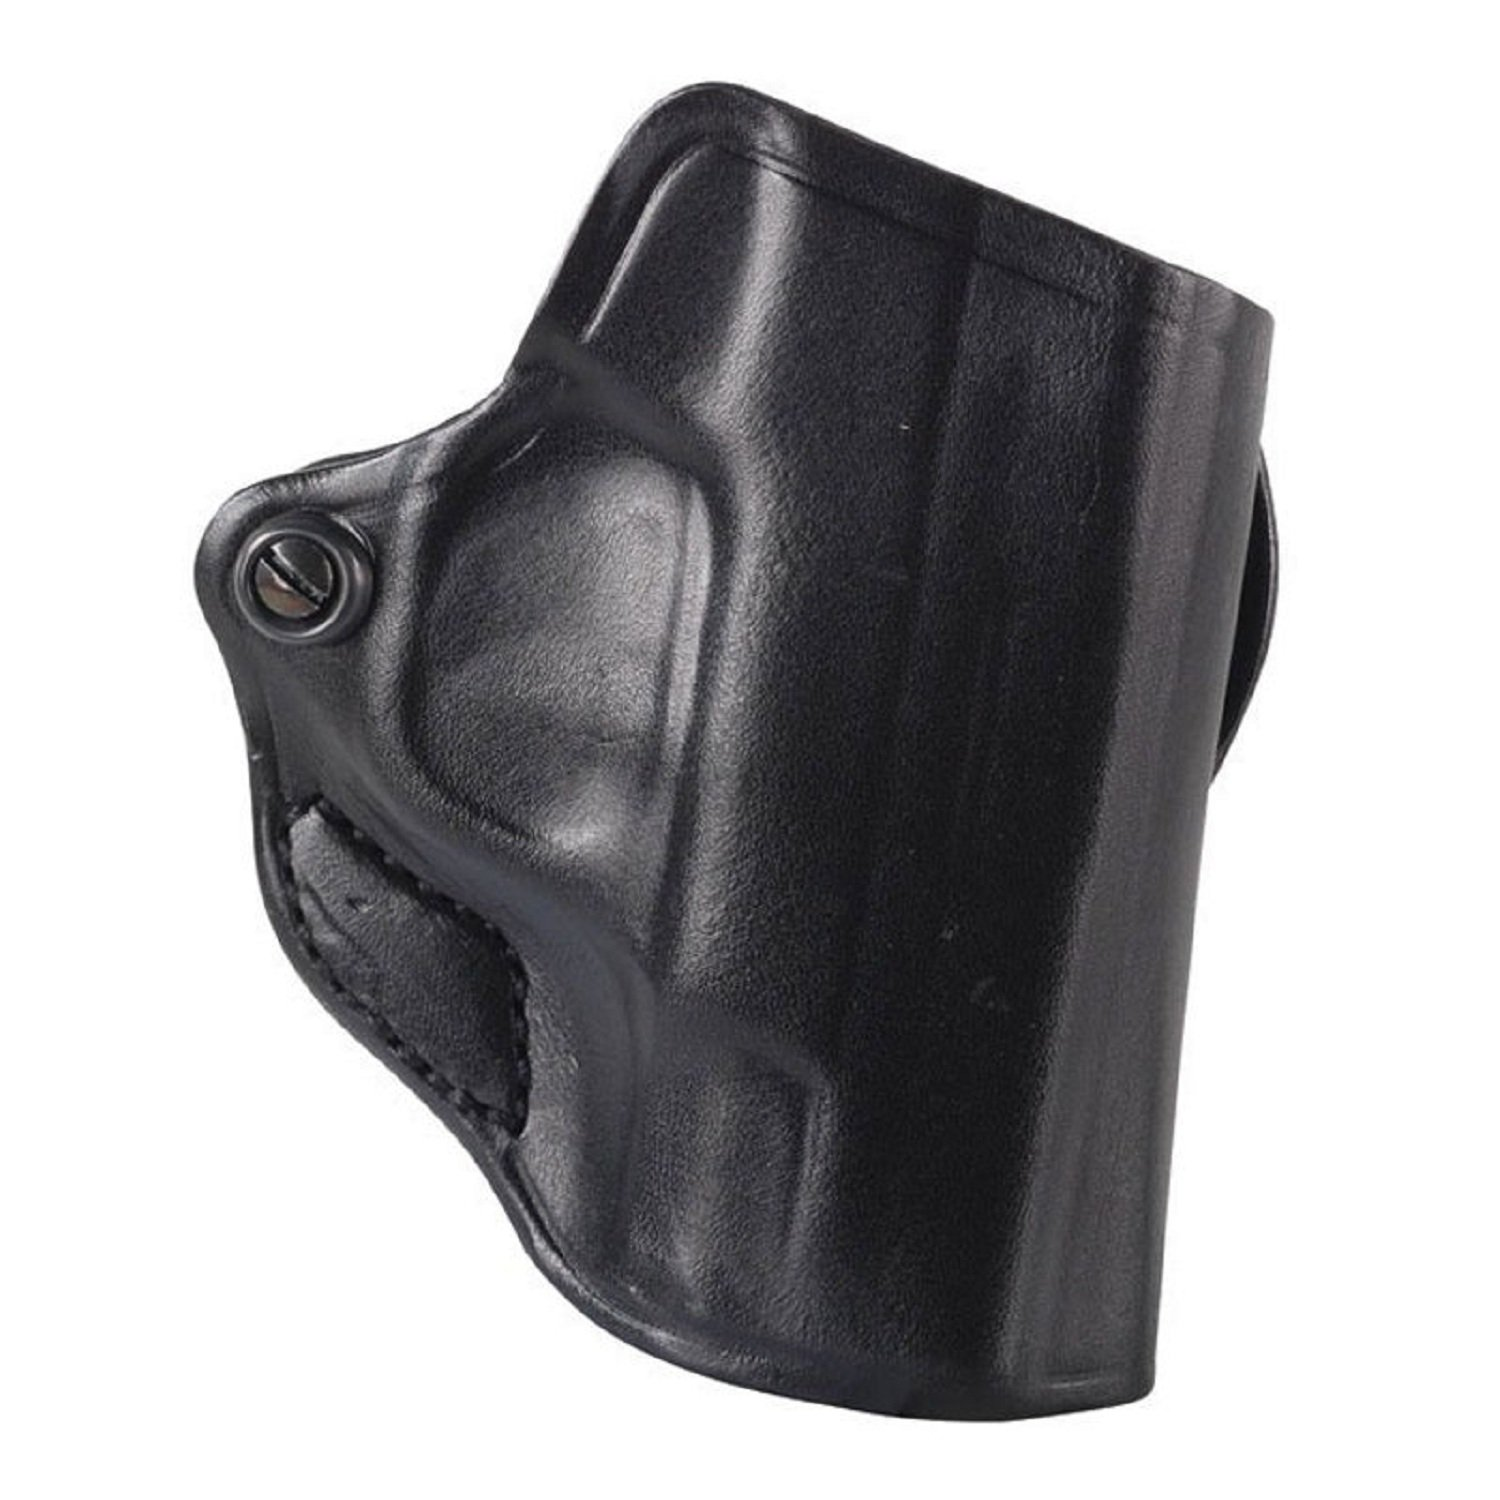 DeSantis 4007528 Mini Scabbard Black Right Hand Glock 43 by DeSantis